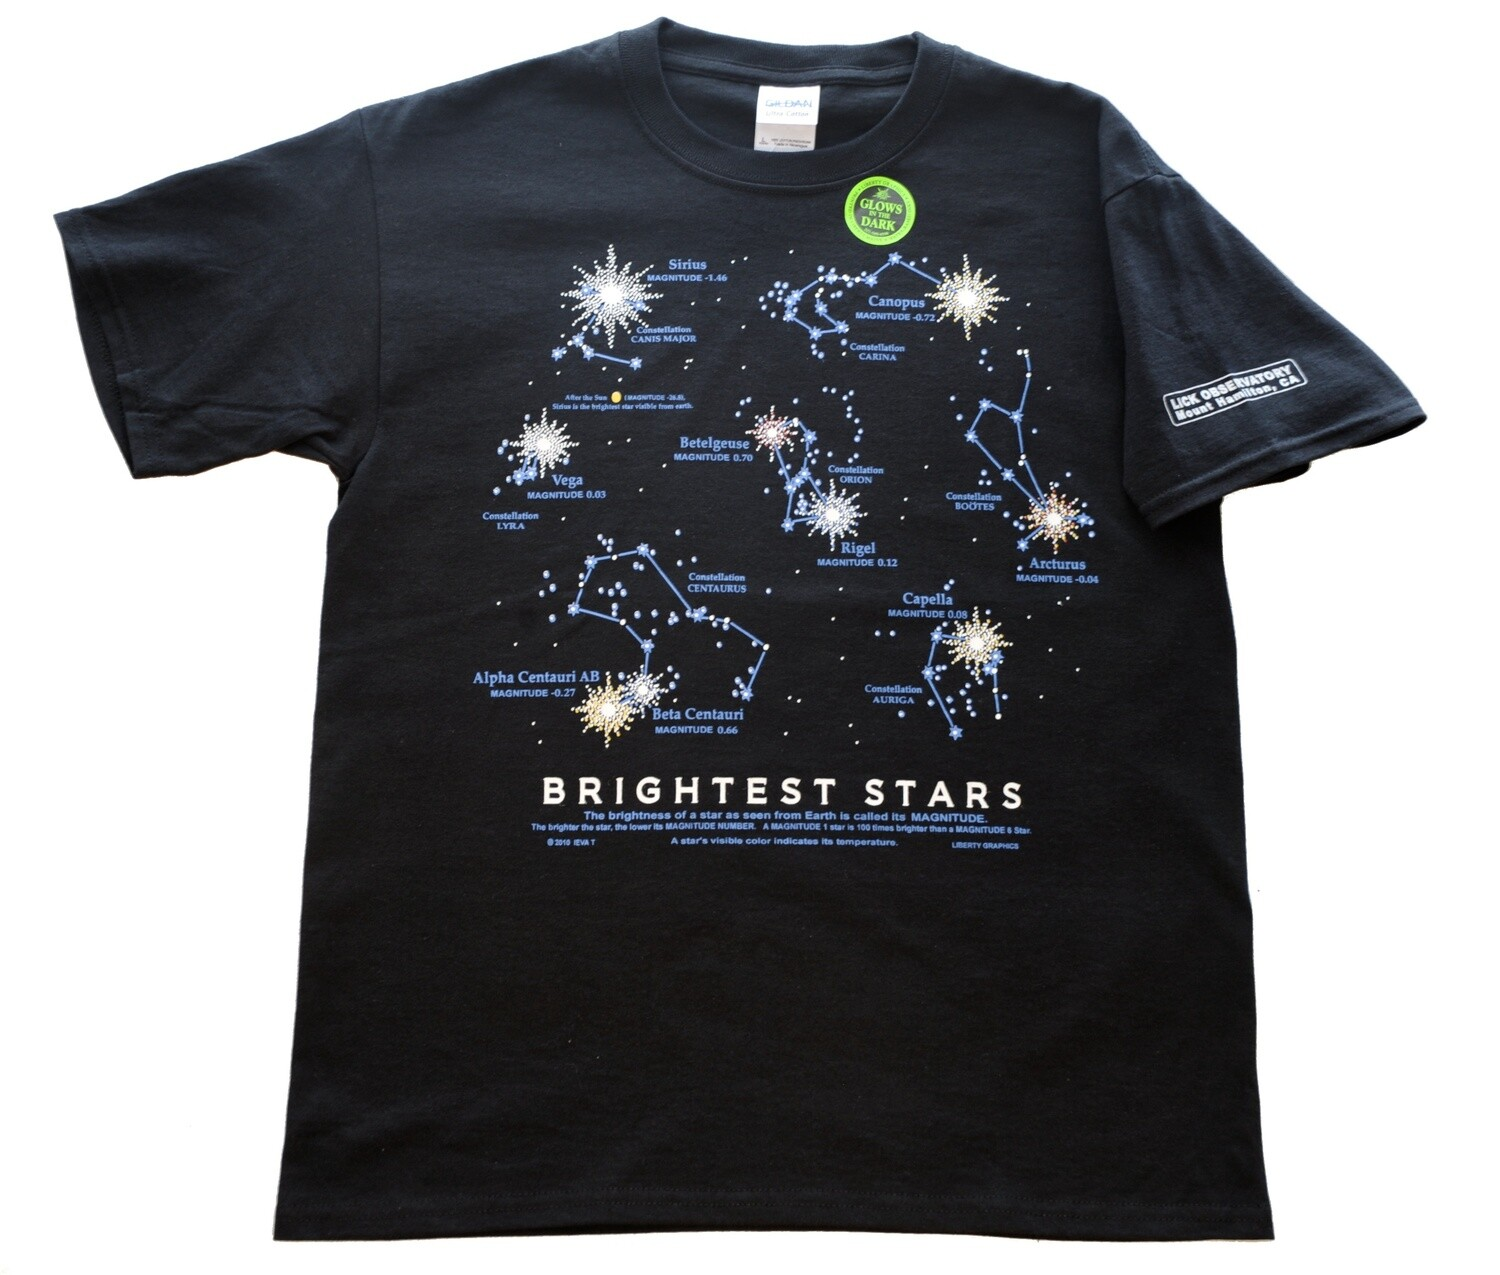 Brightest Stars T-Shirt for Adults and Kids -- Glows in the Dark!